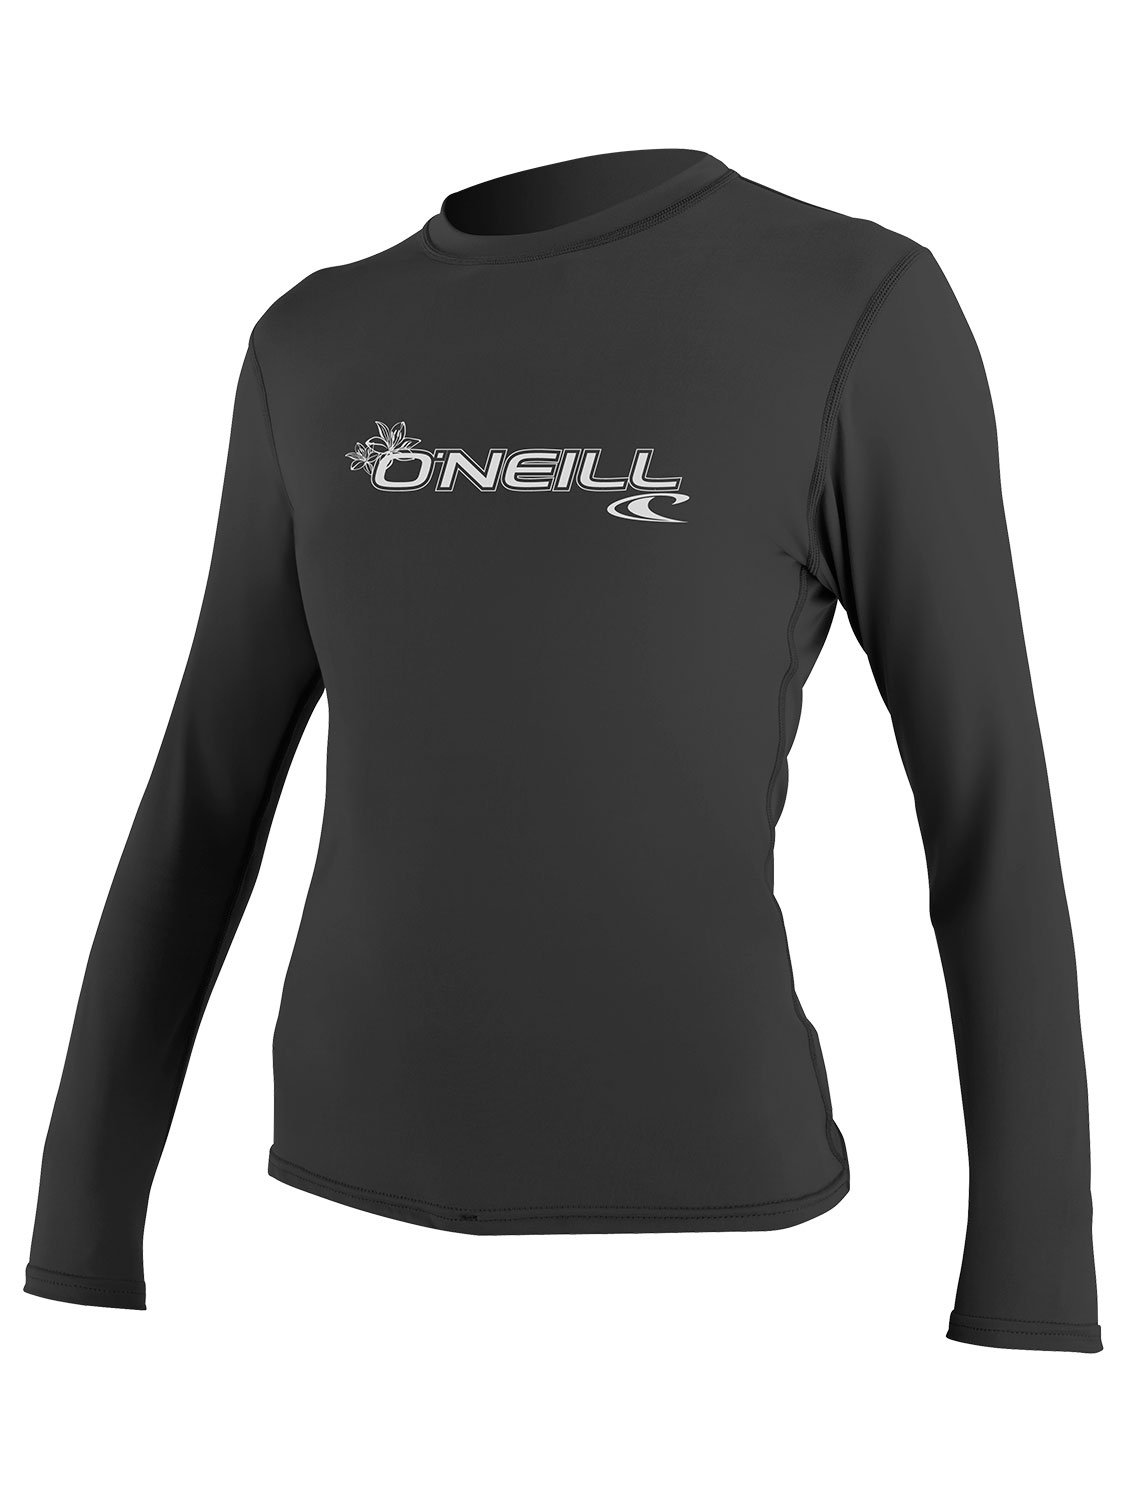 O'Neill Women's Basic Skins Upf 50+ Long Sleeve Sun Shirt, Black, Small